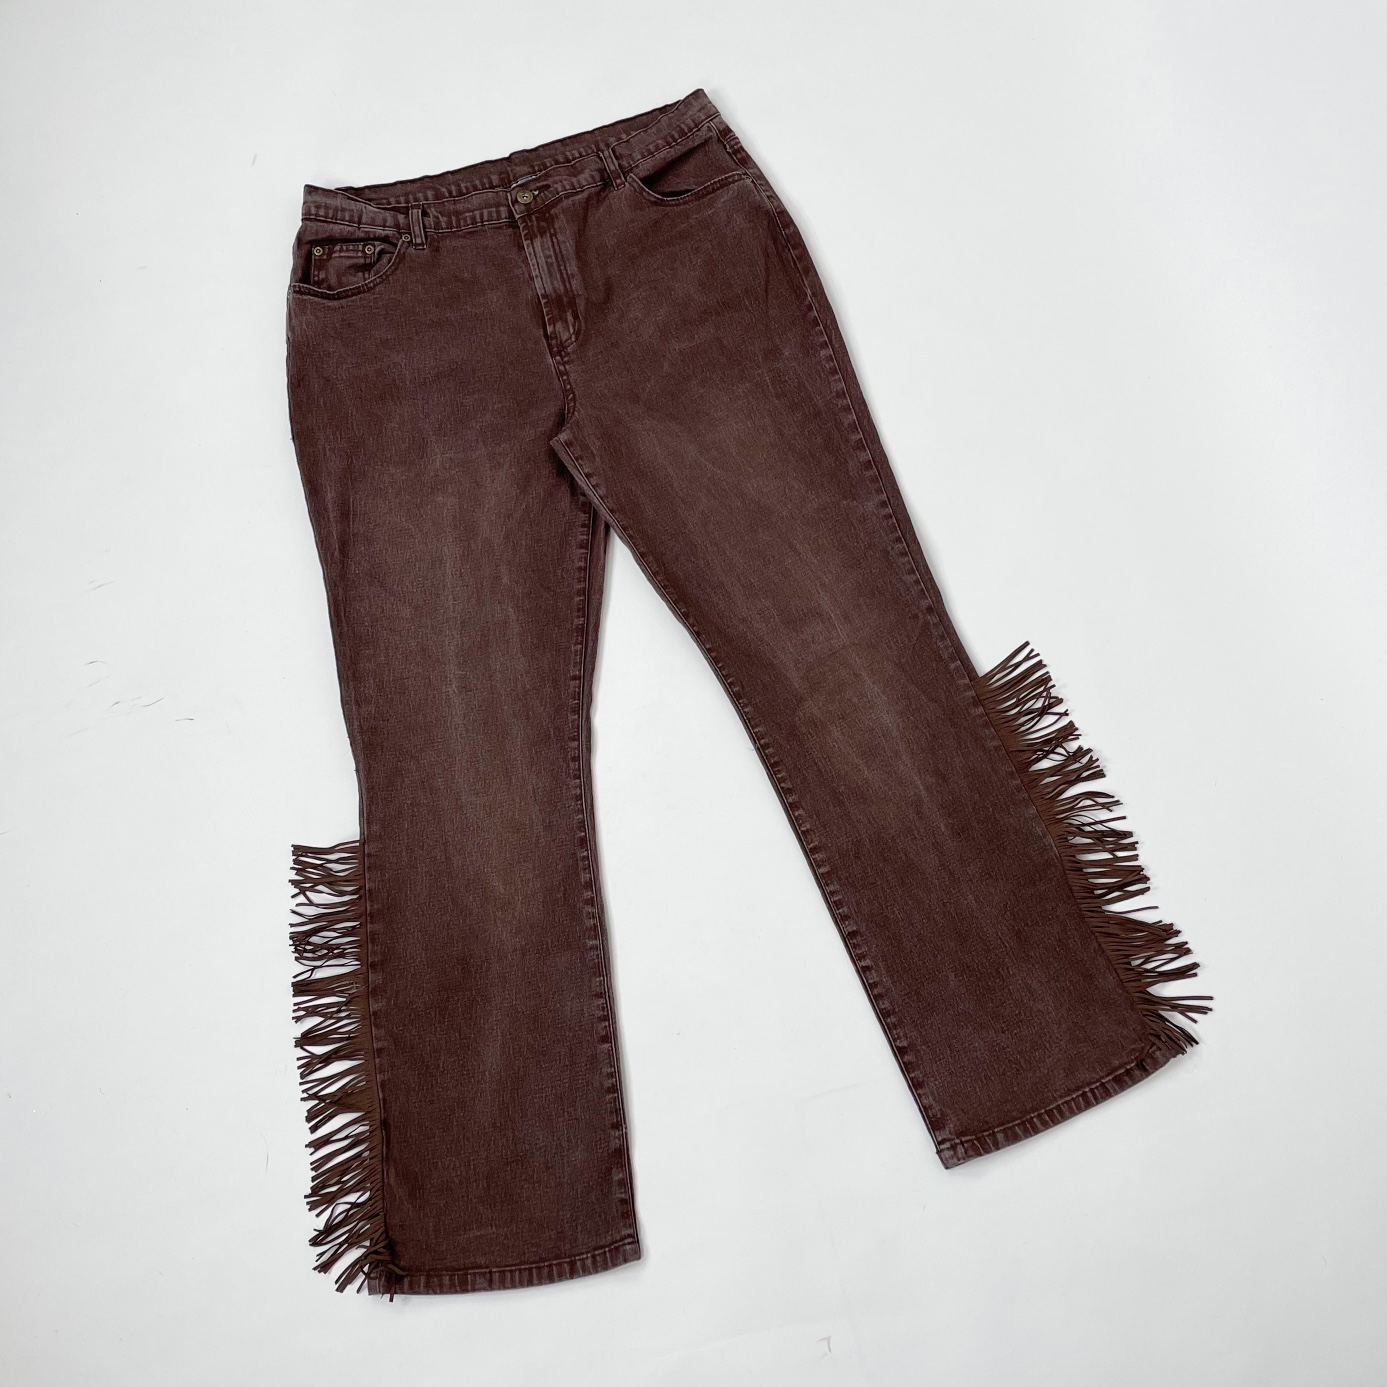 Product Image 1 - Y2K Brown Fringe Jeans   By